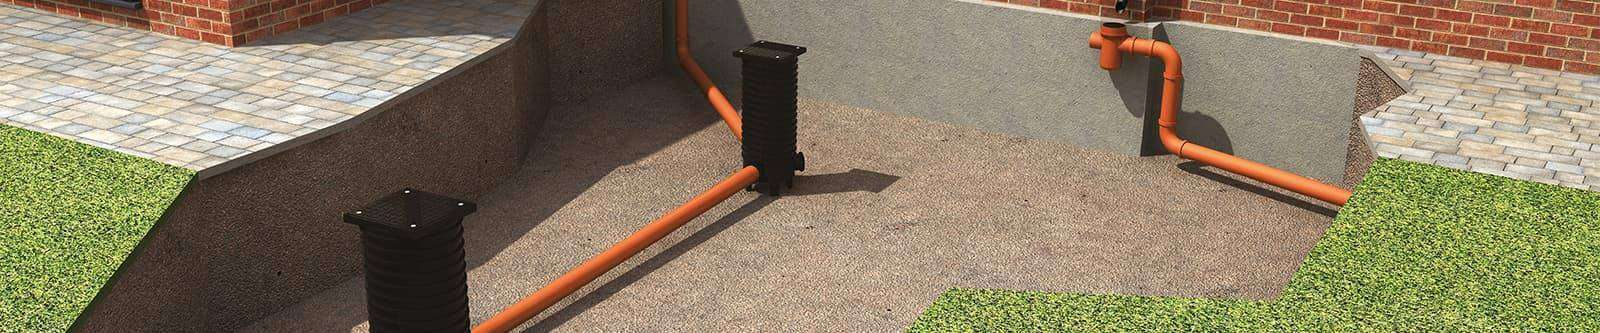 Below Ground Drainage Systems